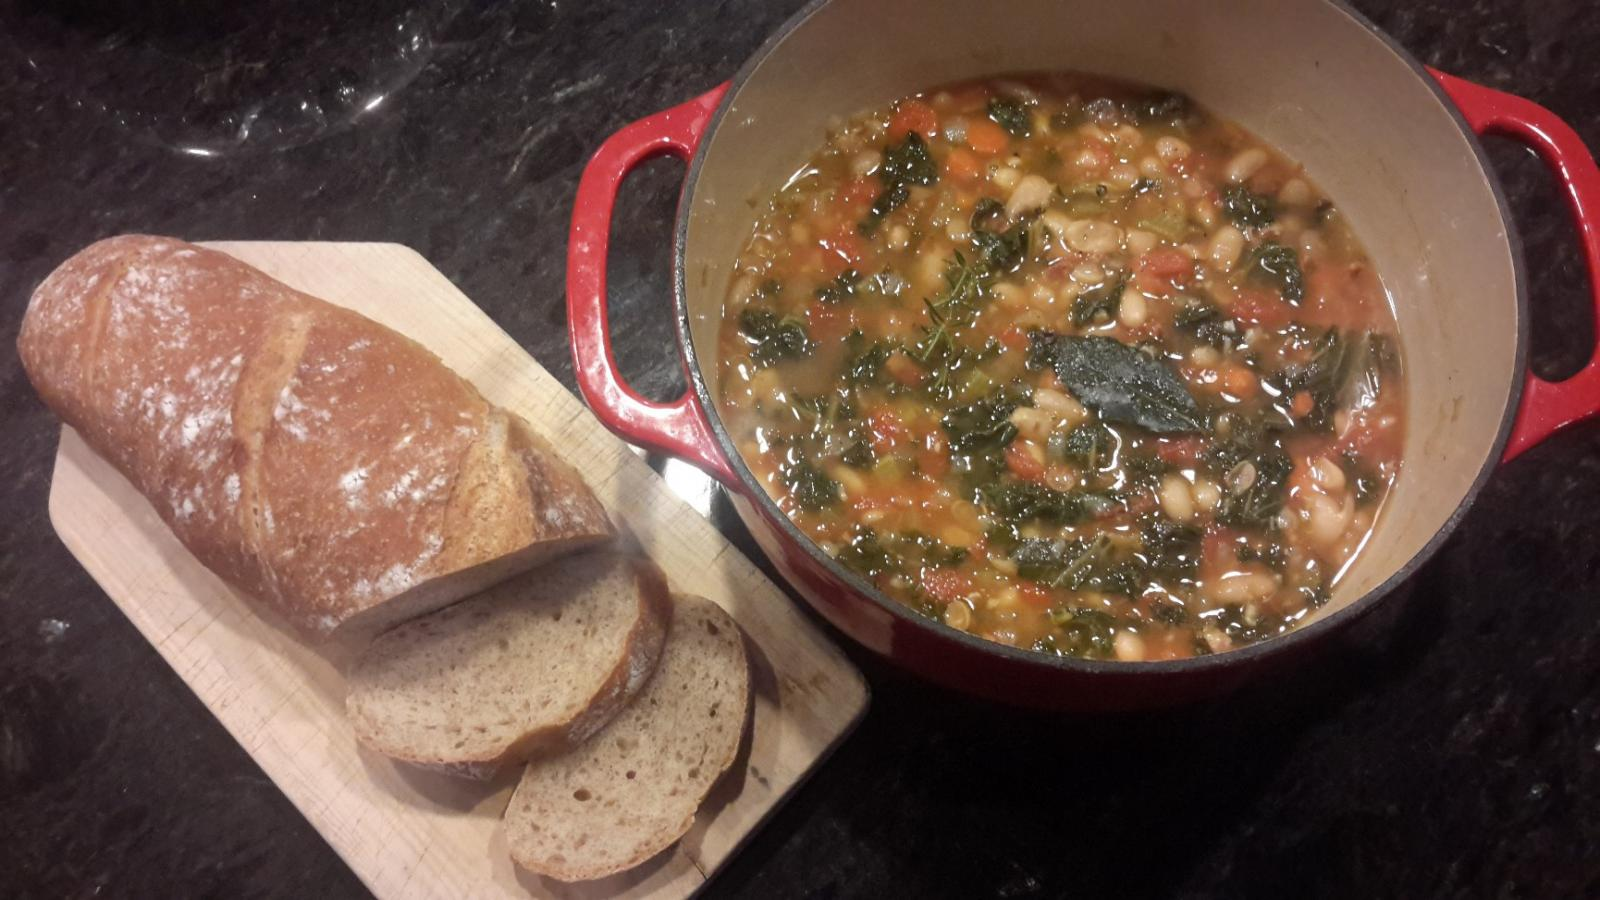 stew and bread.jpg